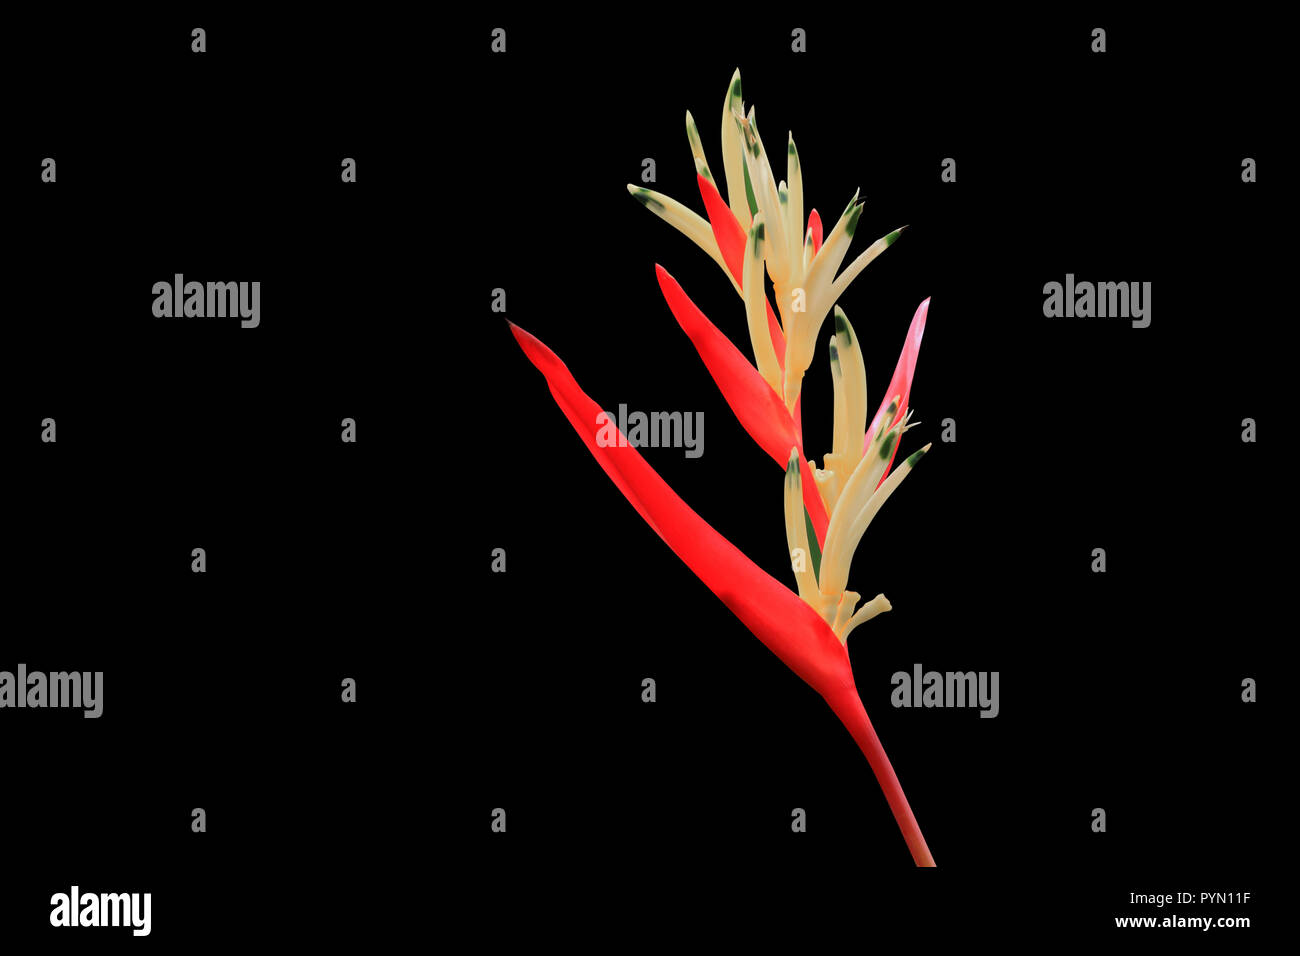 bird of paradise Beautiful red flower Strelitzia Reginae   isolated on black background and clipping path - Stock Image